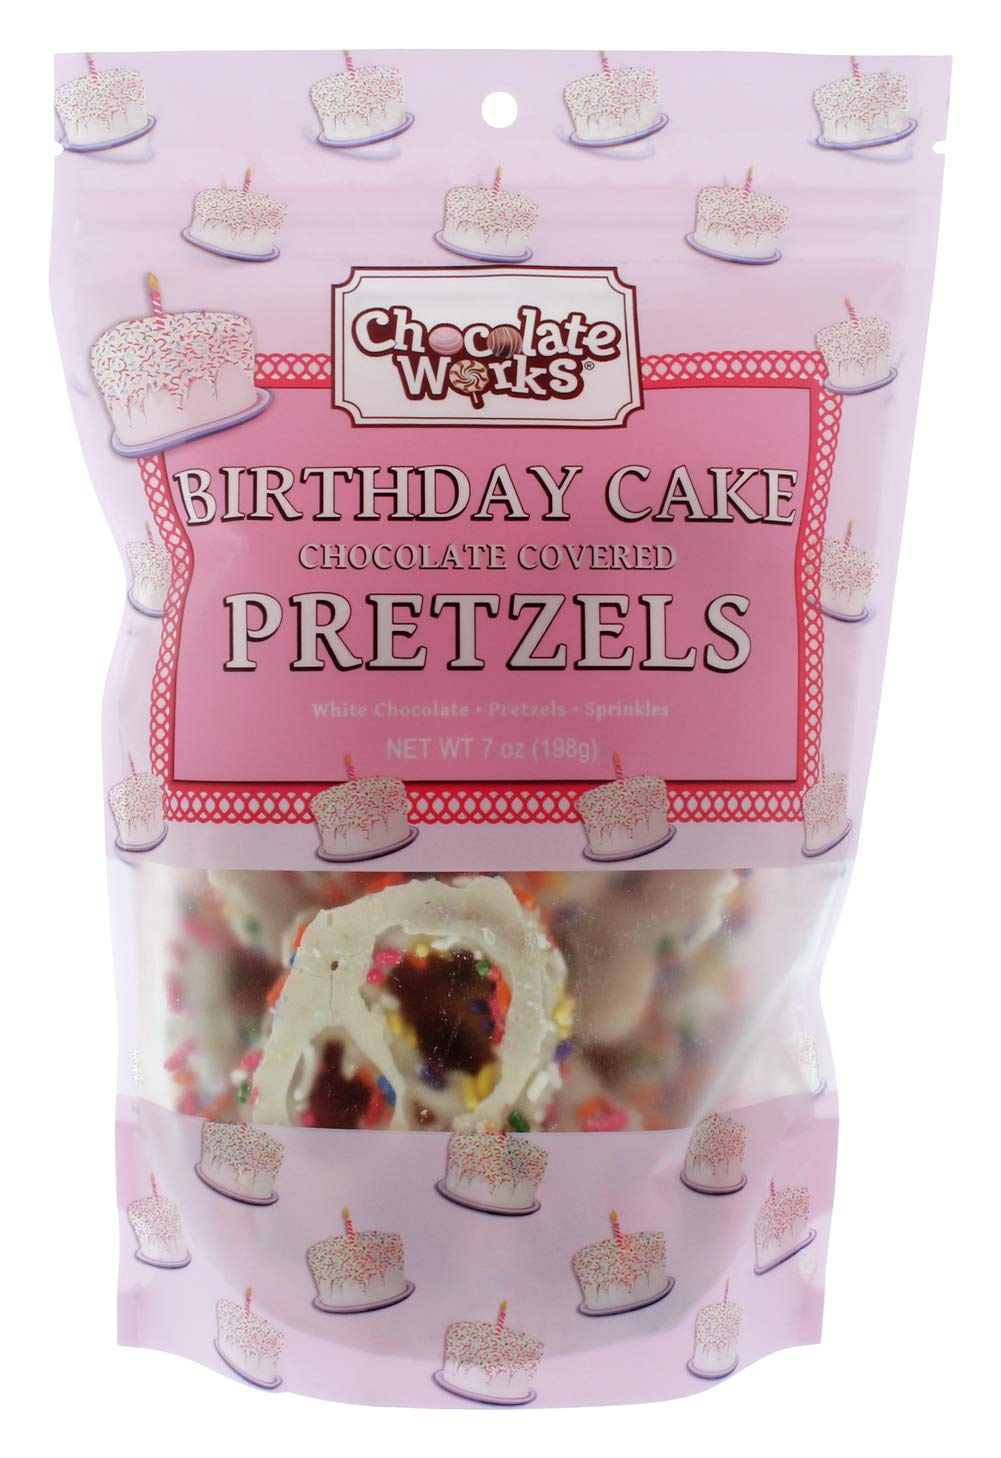 Birthday Cake Chocolate Covered Pretzel Pouches,12 Pack by Chocolate Works